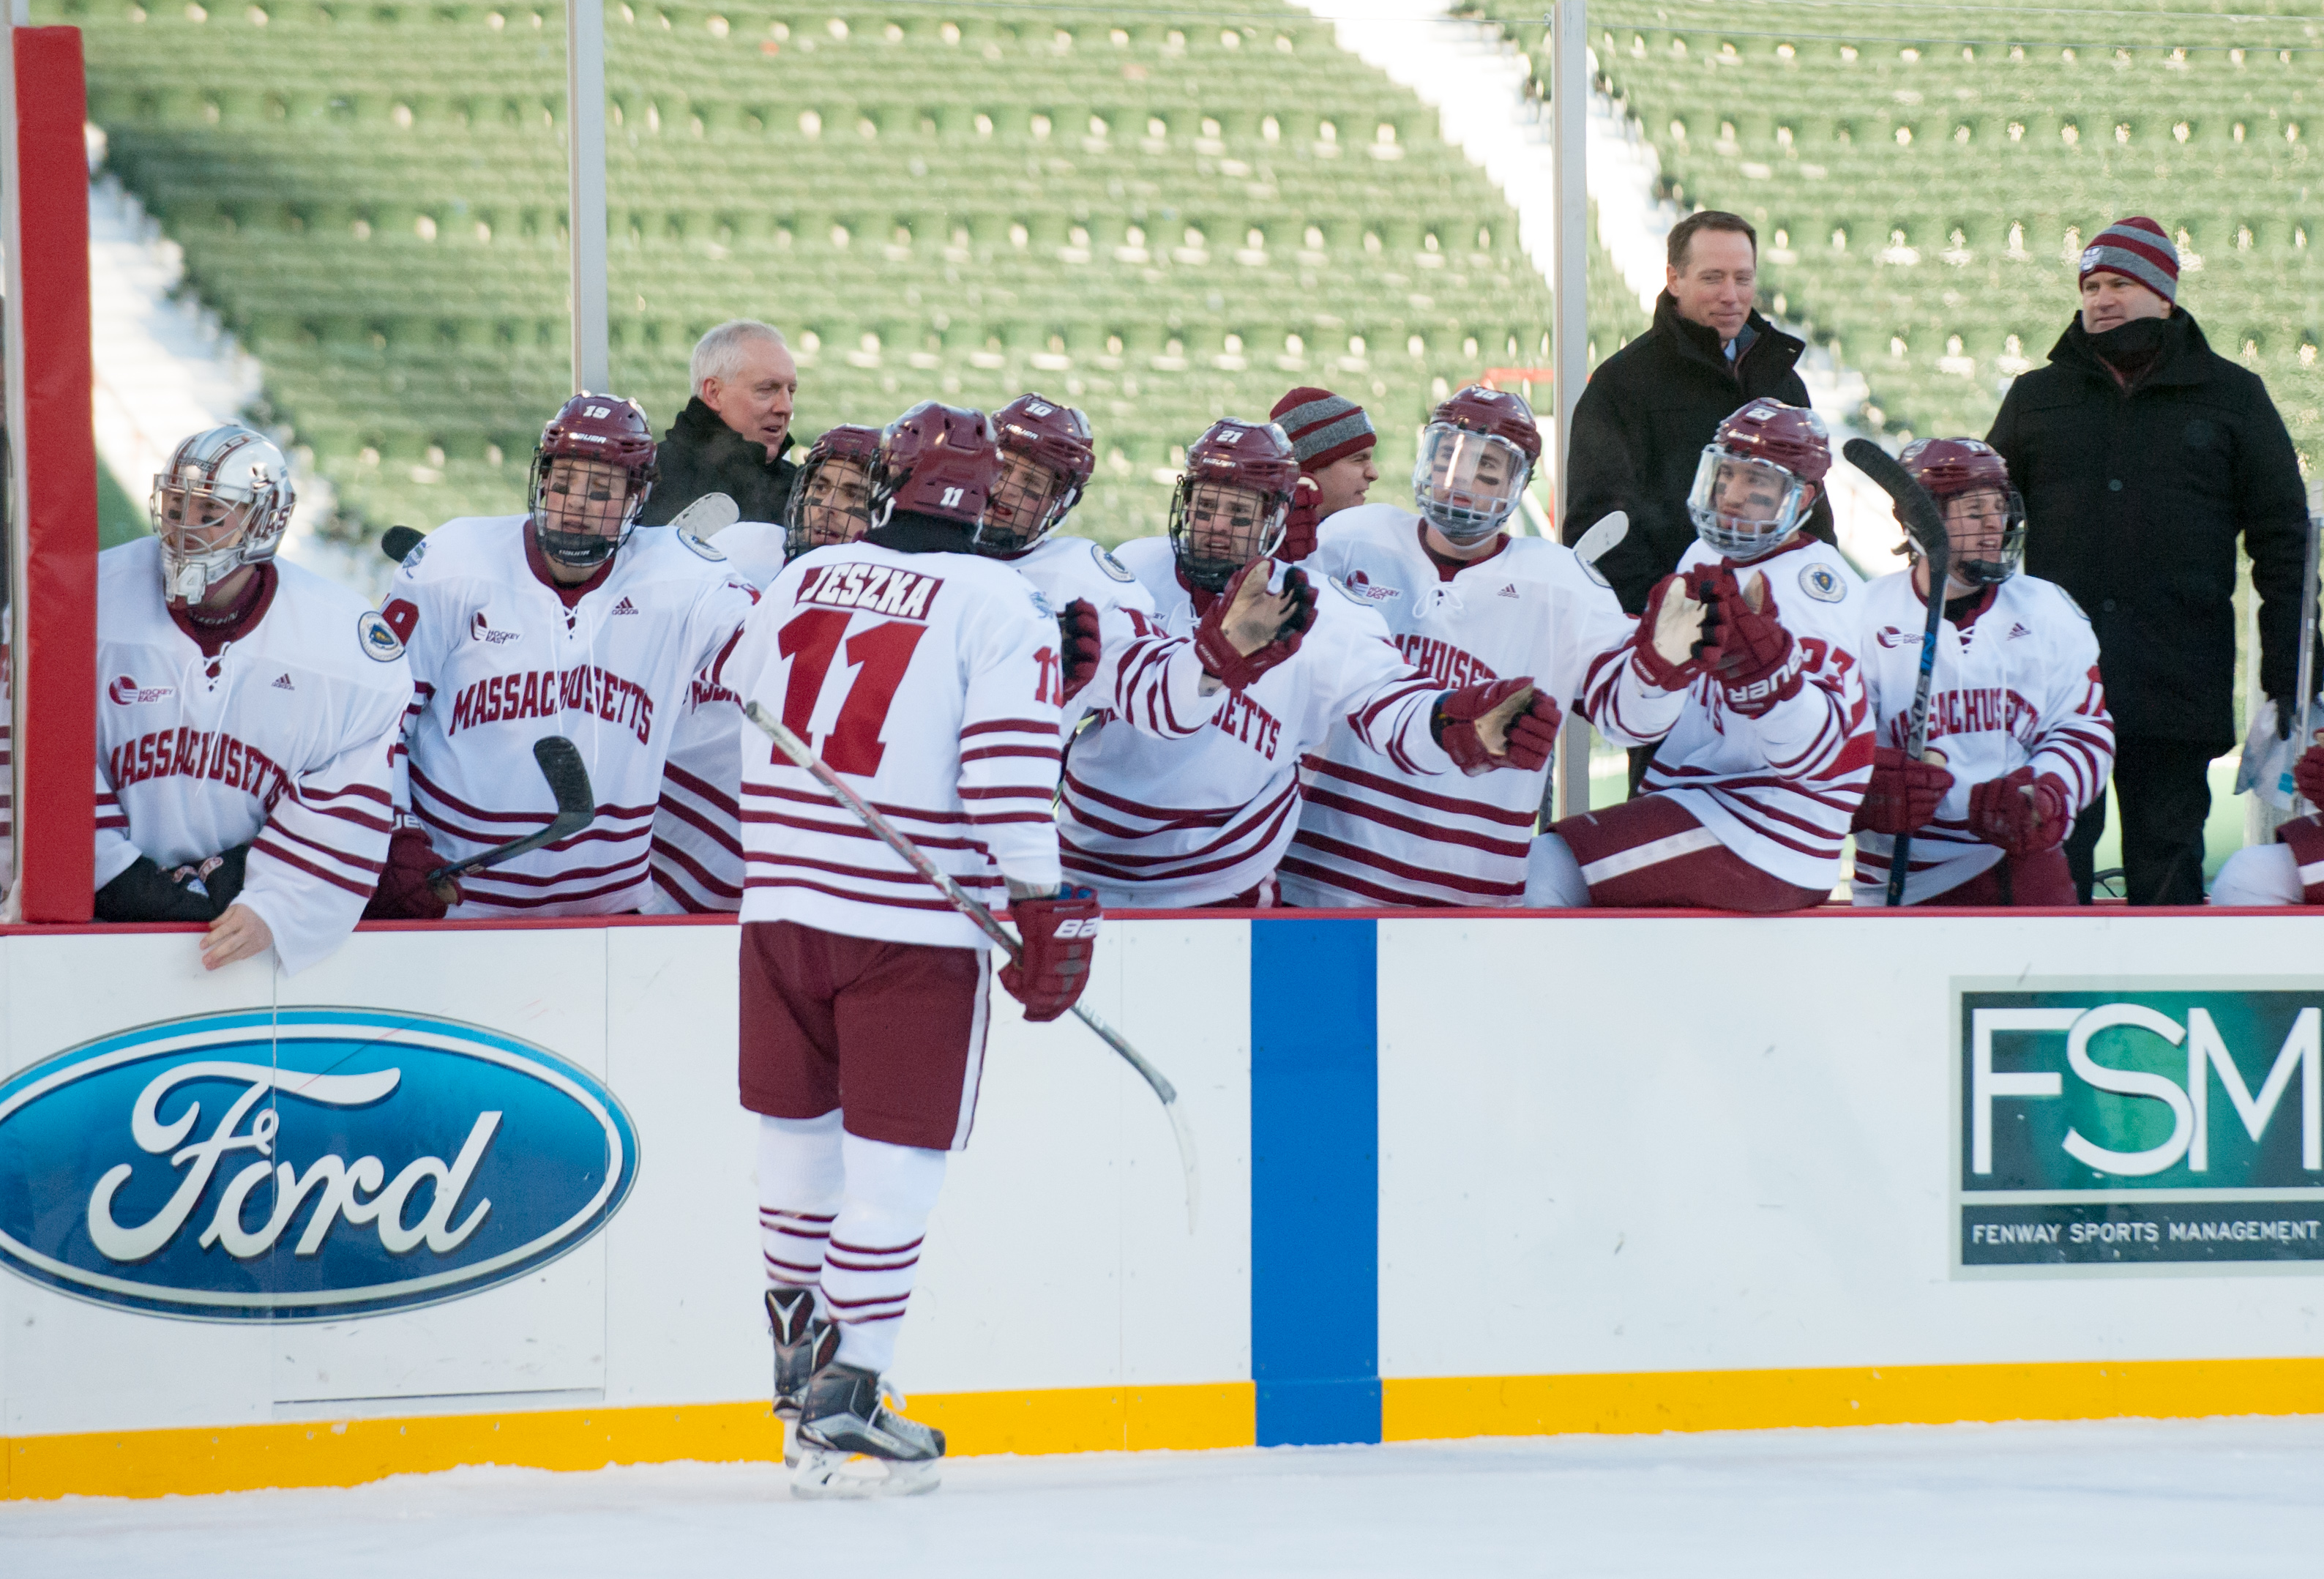 Hockey East: UMass Hockey Undergoes Roster Turnover